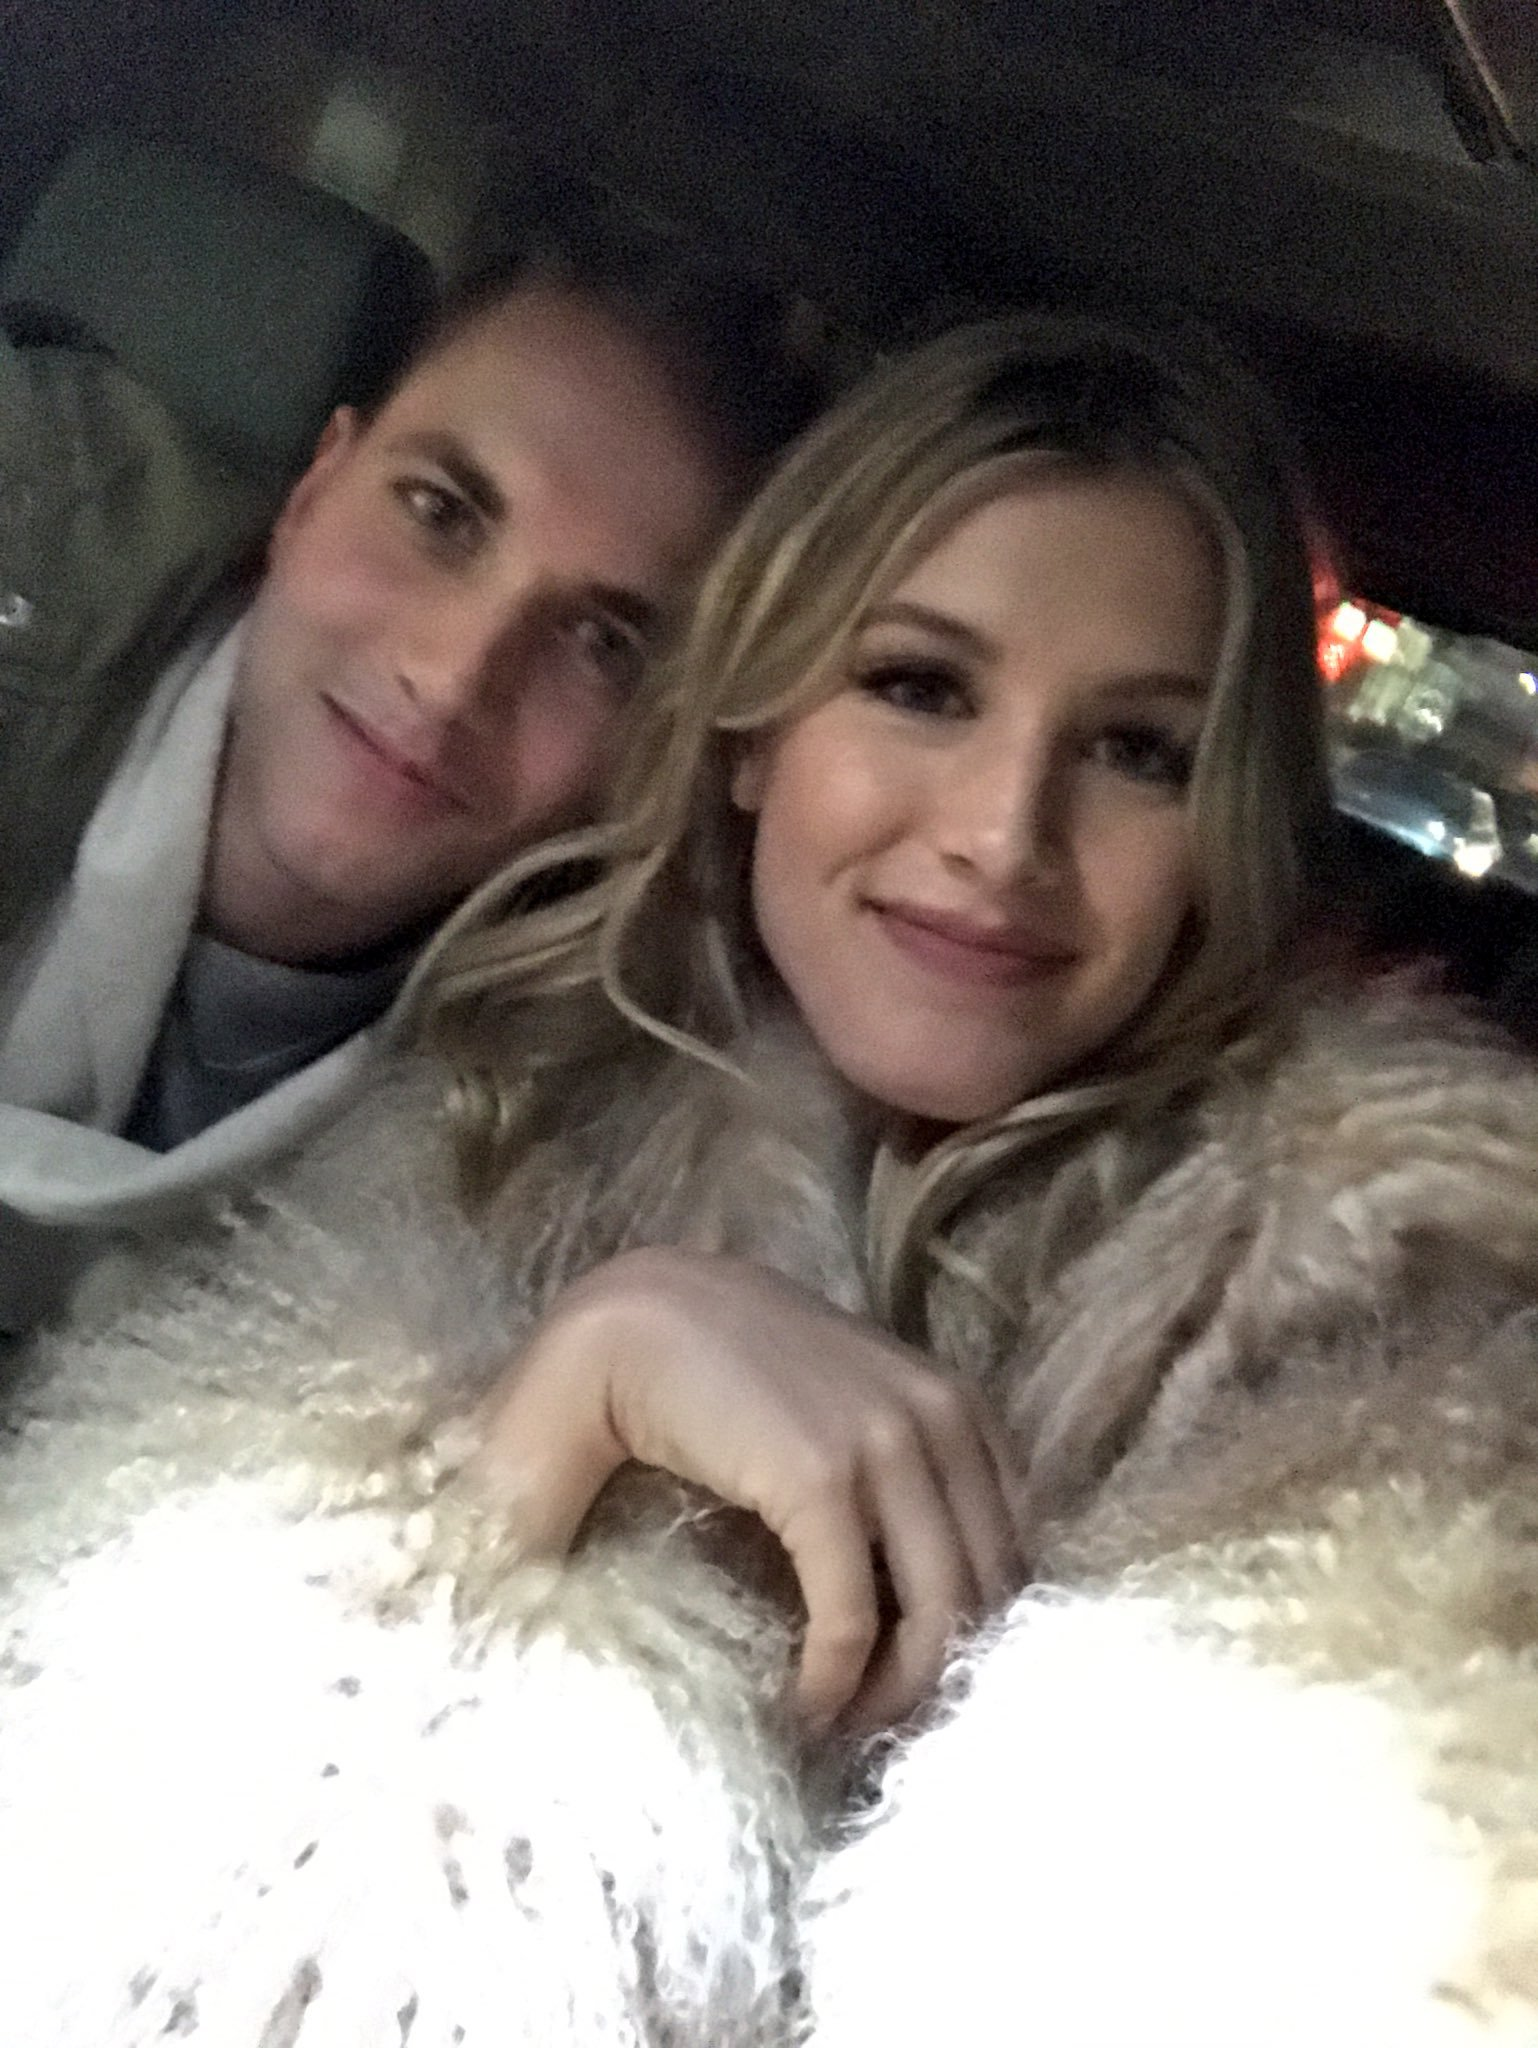 Professional tennis player Genie Bouchard has made good on her deal to go out on a date with a student from the University of Missouri.( @geniebouchard)